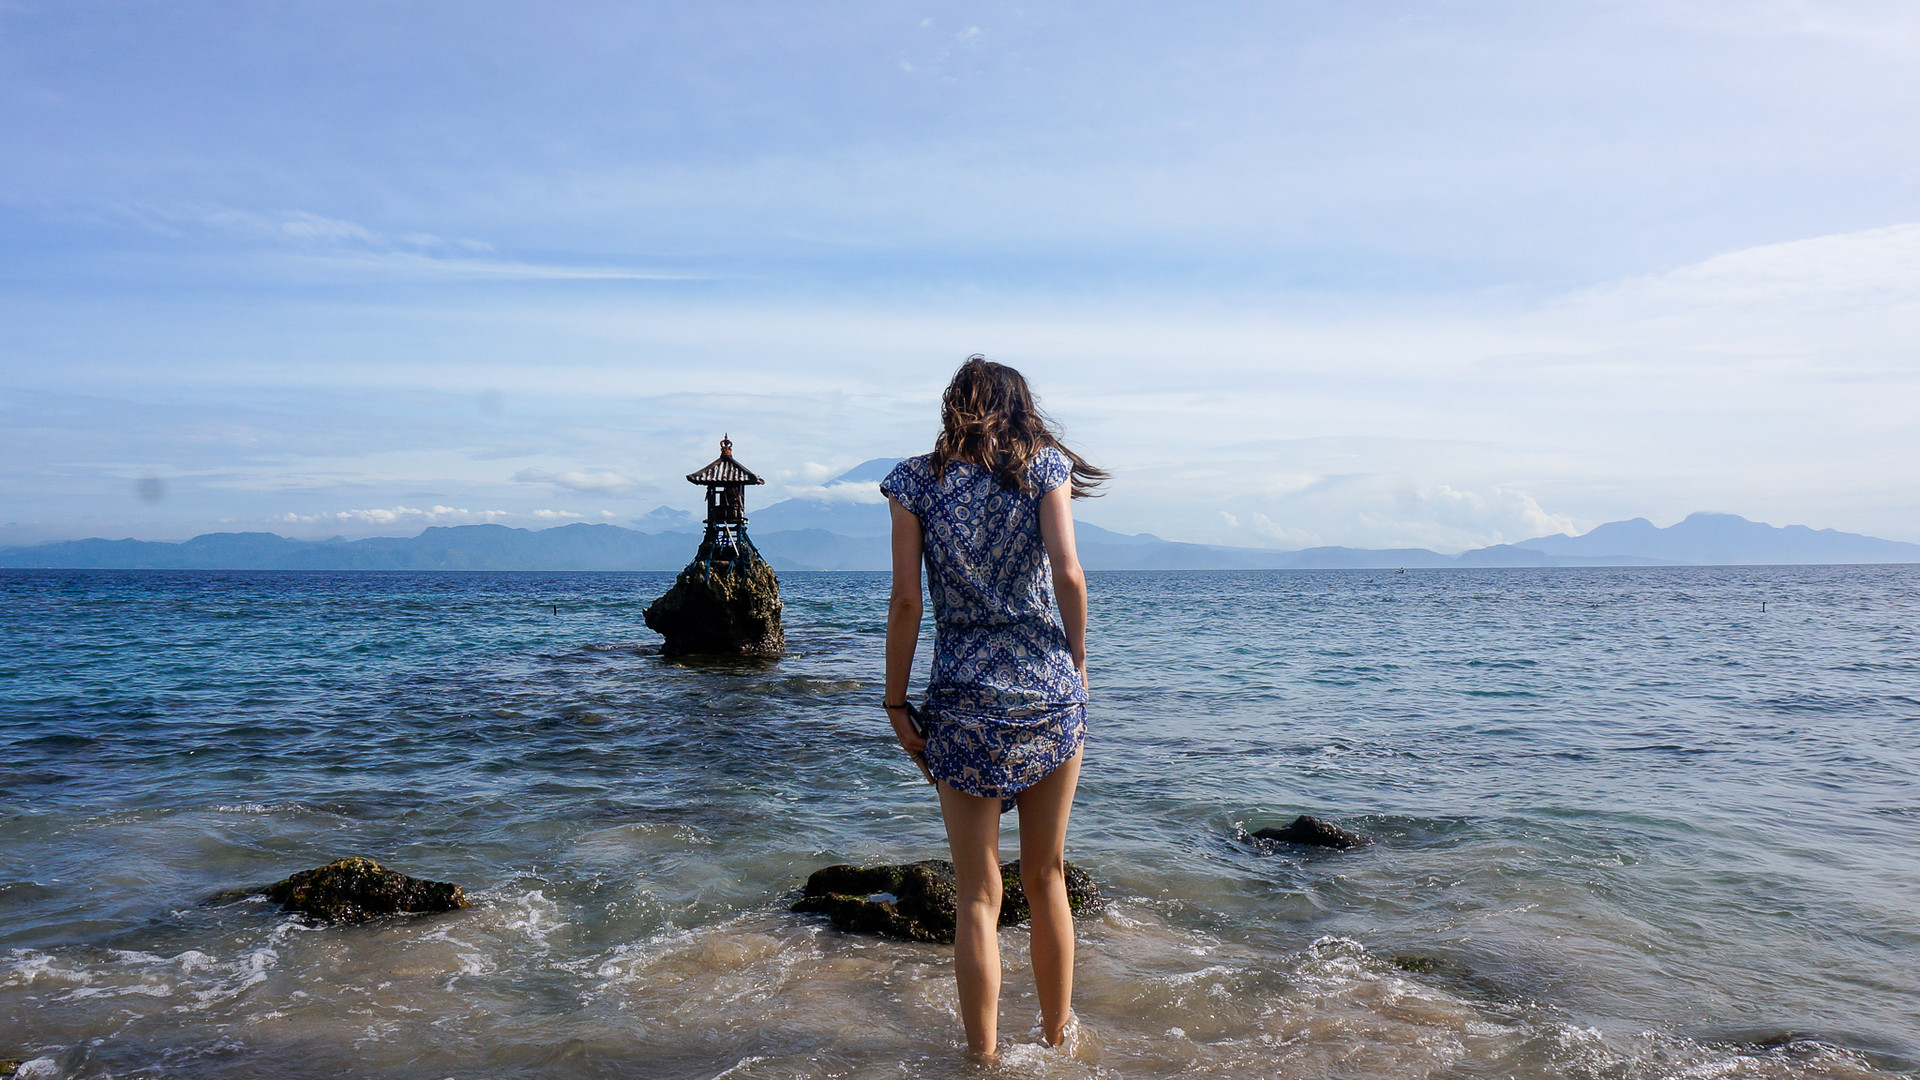 Traveling to Nusa Panida in Bali, off the tourist trail. A shot for a travel article